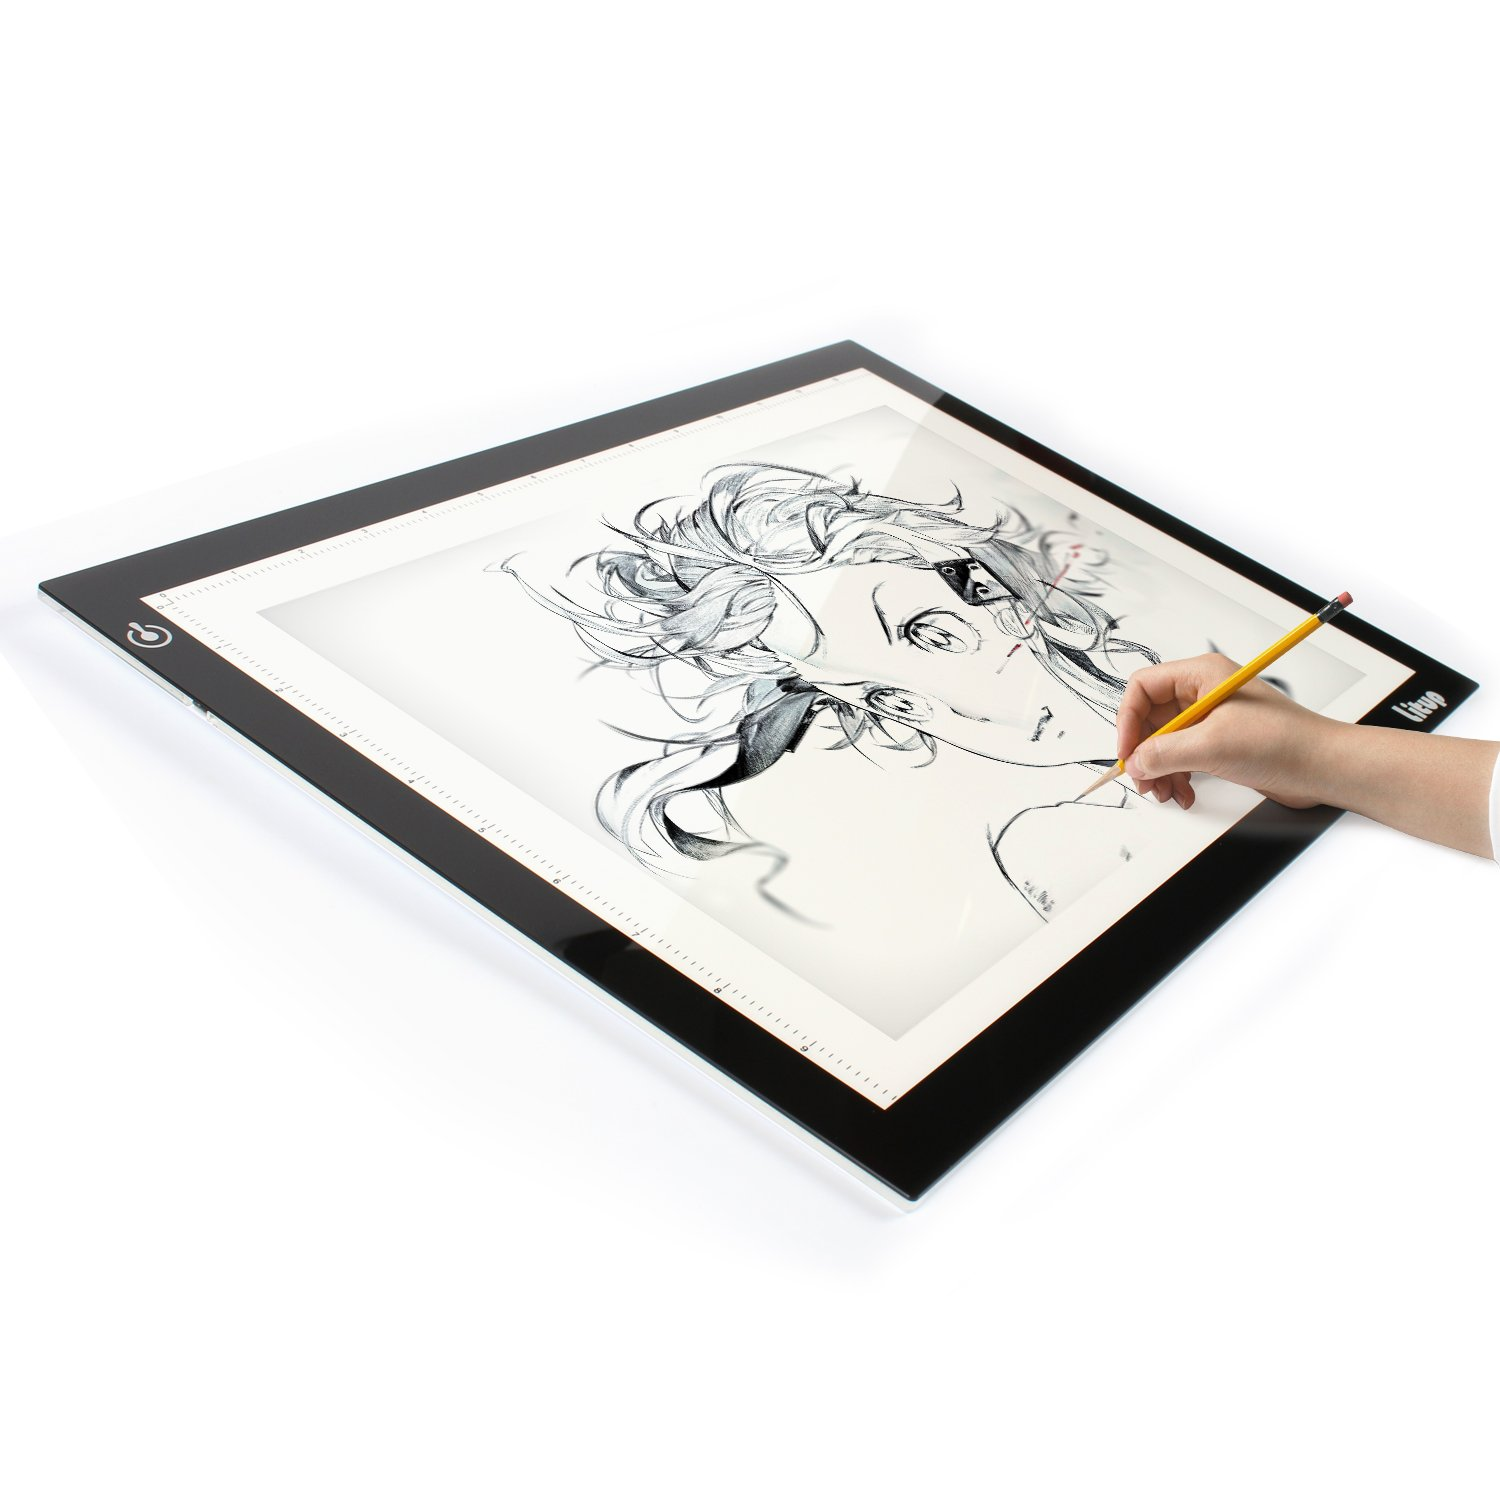 Litup Light Box Pad L1563x W1181 Tracing Here Is The Final Circuit Image With Extra Thick Traces And Large Pads Drawing Board Table For Animation Sketching Artcraft Lp B4